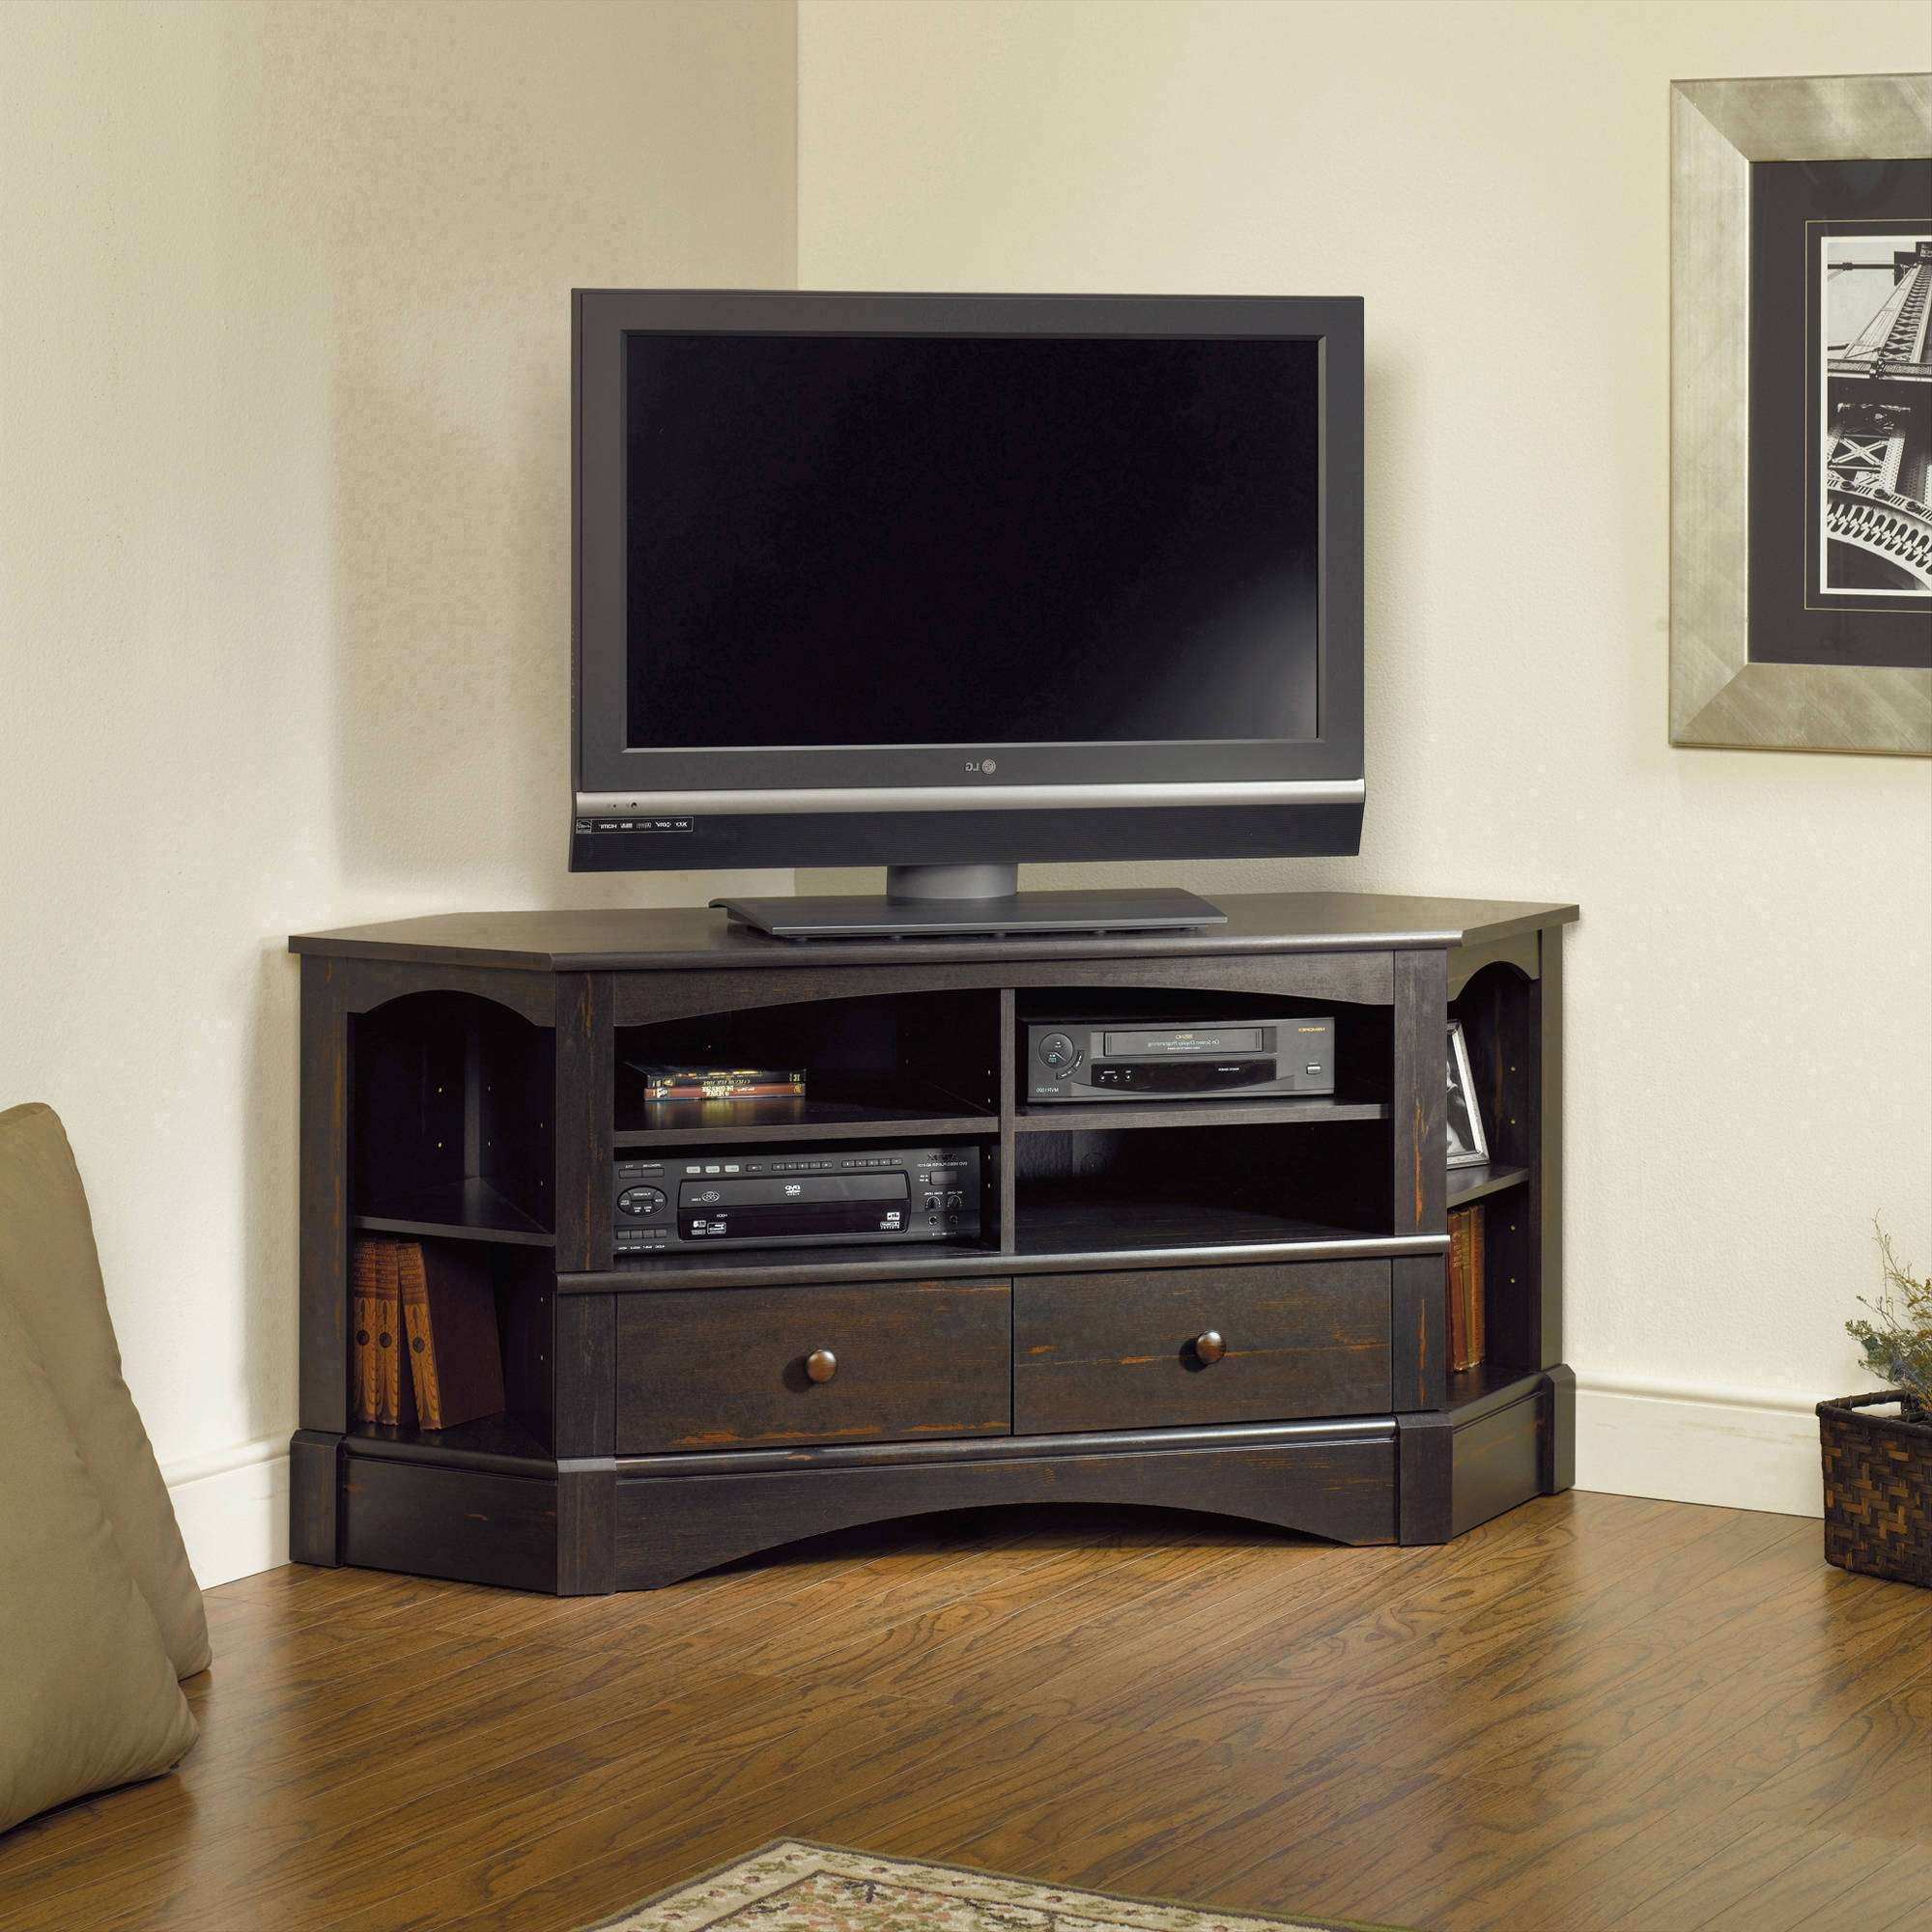 Wall Units: Amusing Walmart Tv Stands And Entertainment Centers Tv Within Corner Tv Cabinets With Hutch (View 20 of 20)